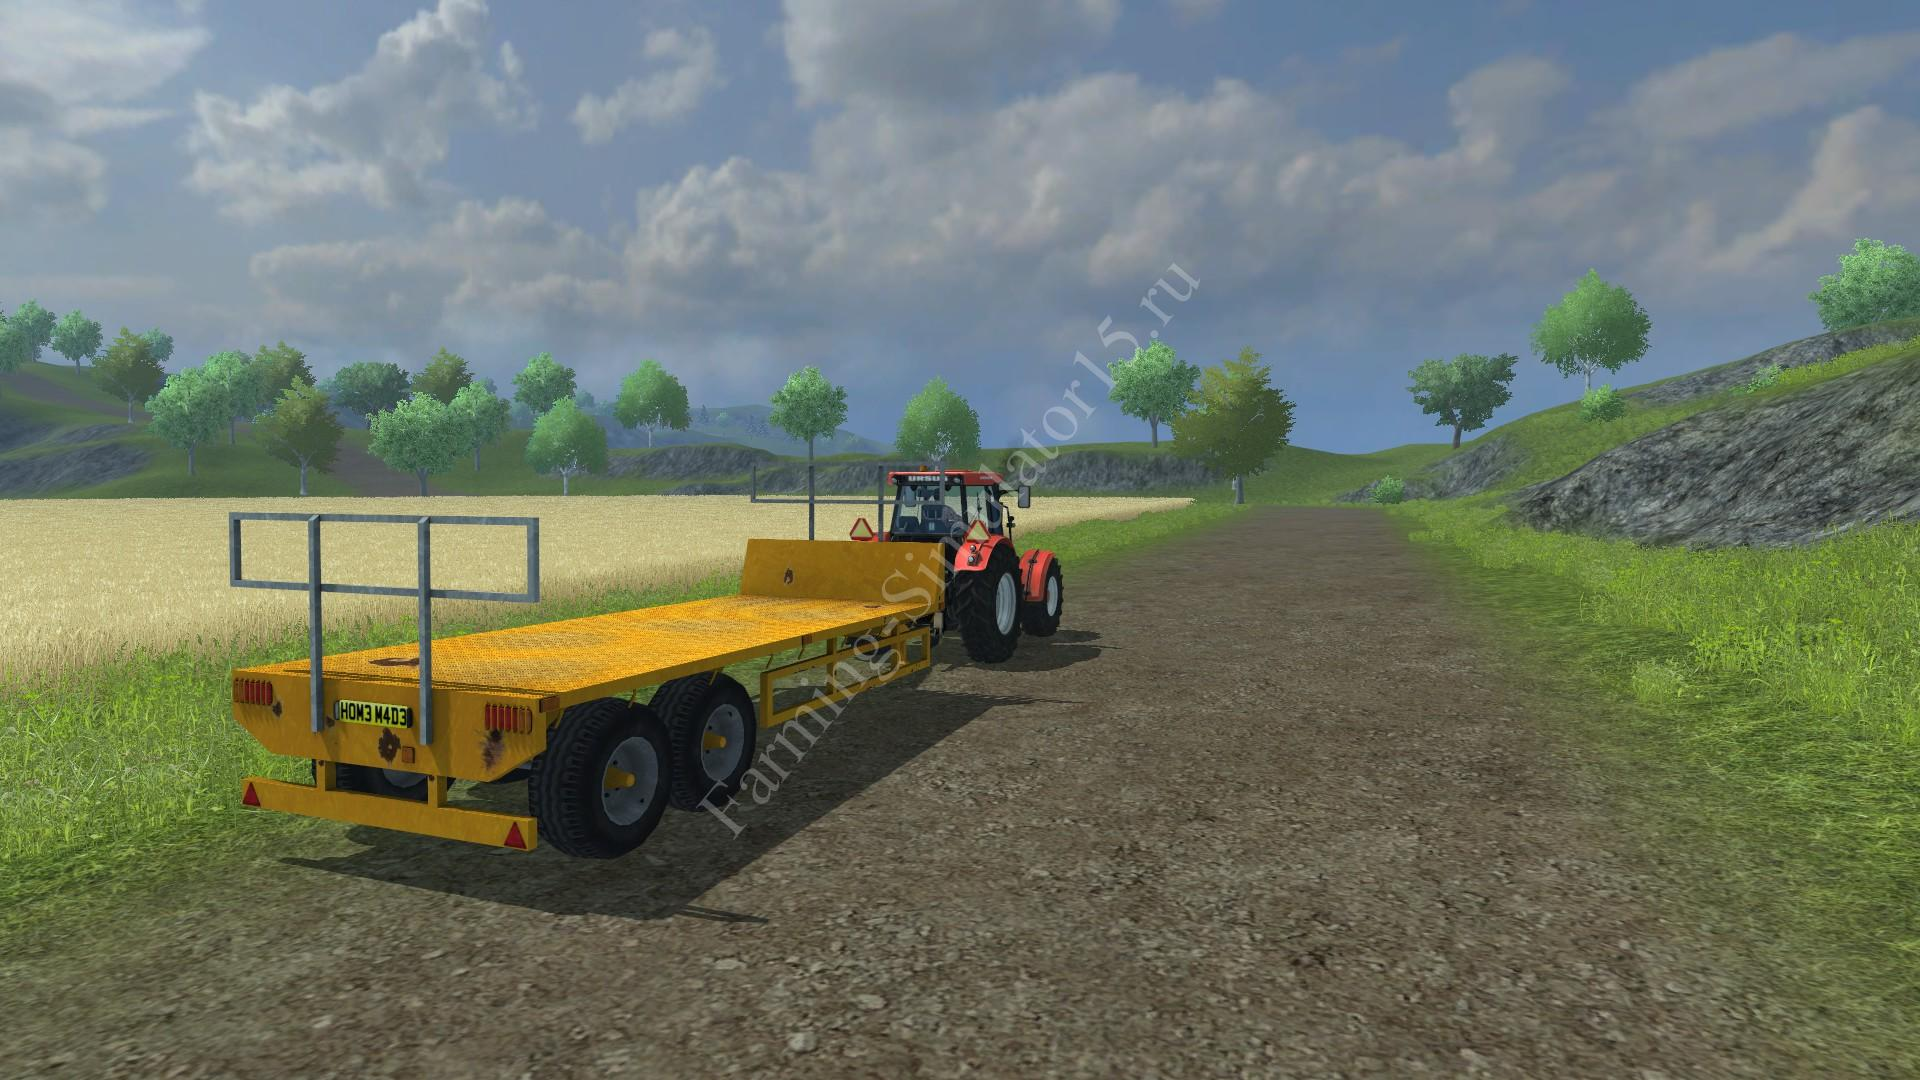 Мод прицепа для тюков Homemade Flatbed Trailer v 1.0 Farming Simulator 2013, Farming Simulator 13